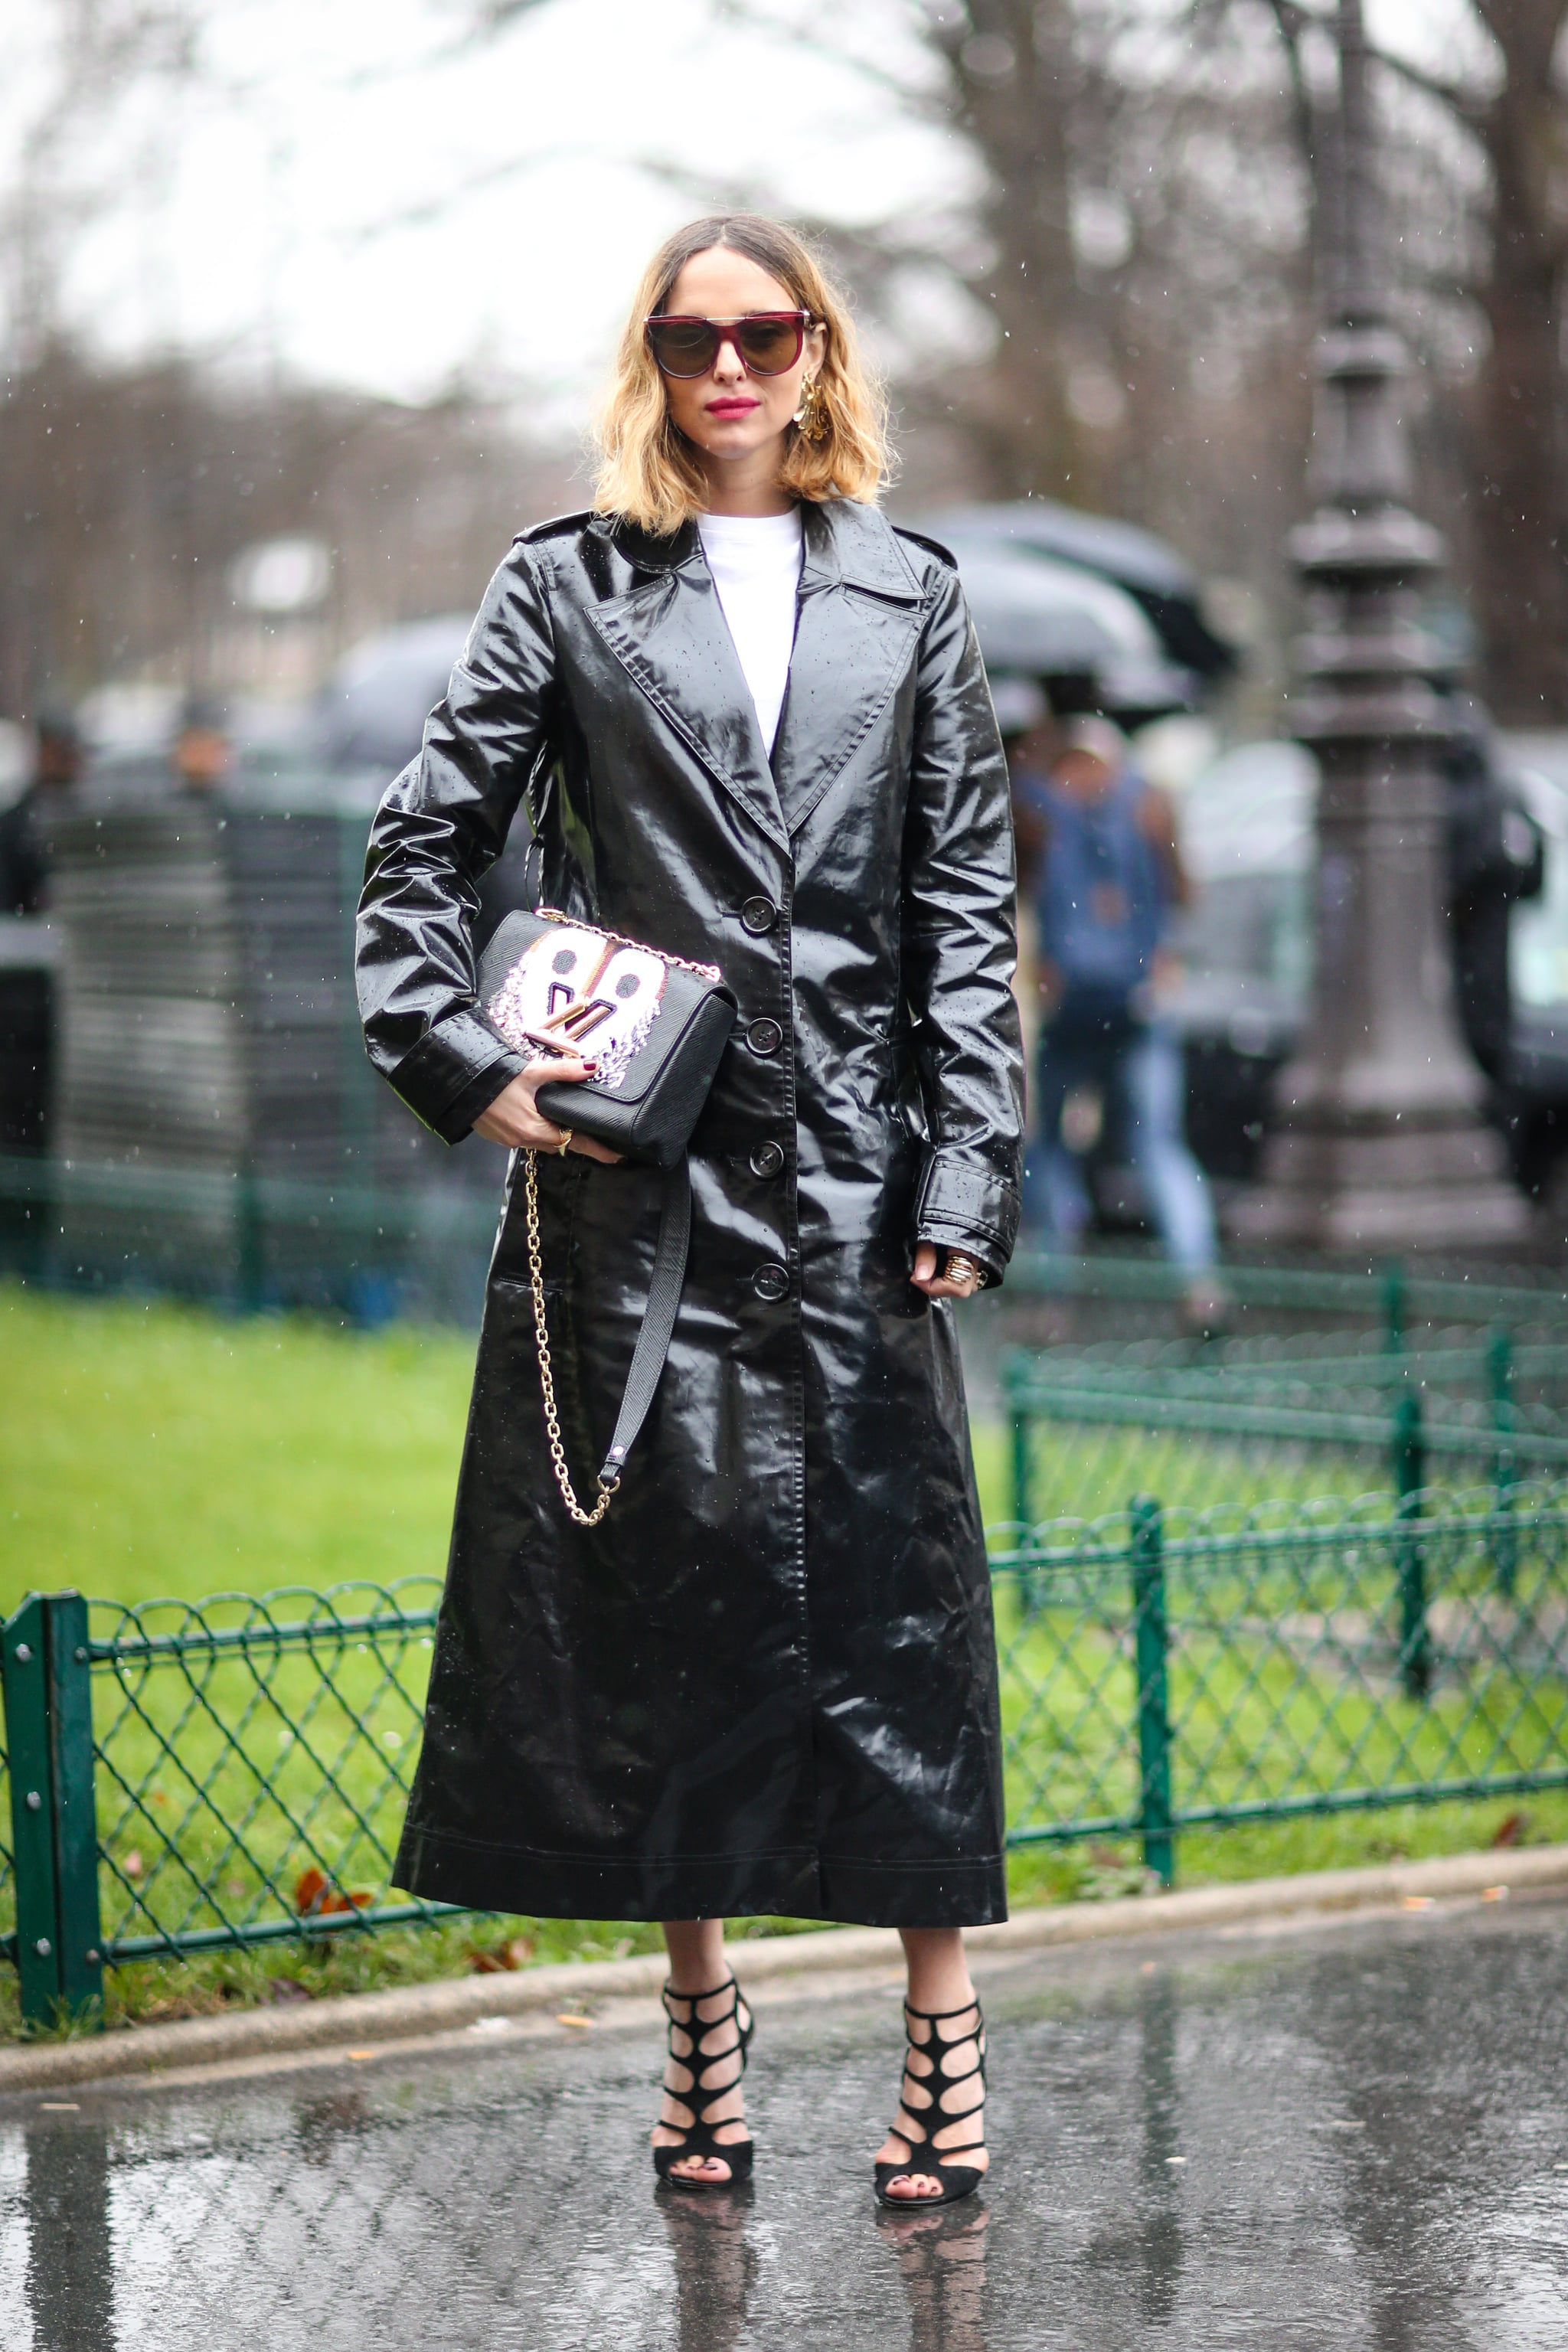 Shiny Leather Trench | 9 Street Style Trends You'll Wear For the Rest of 2017 | POPSUGAR Fashion Middle East Photo 8